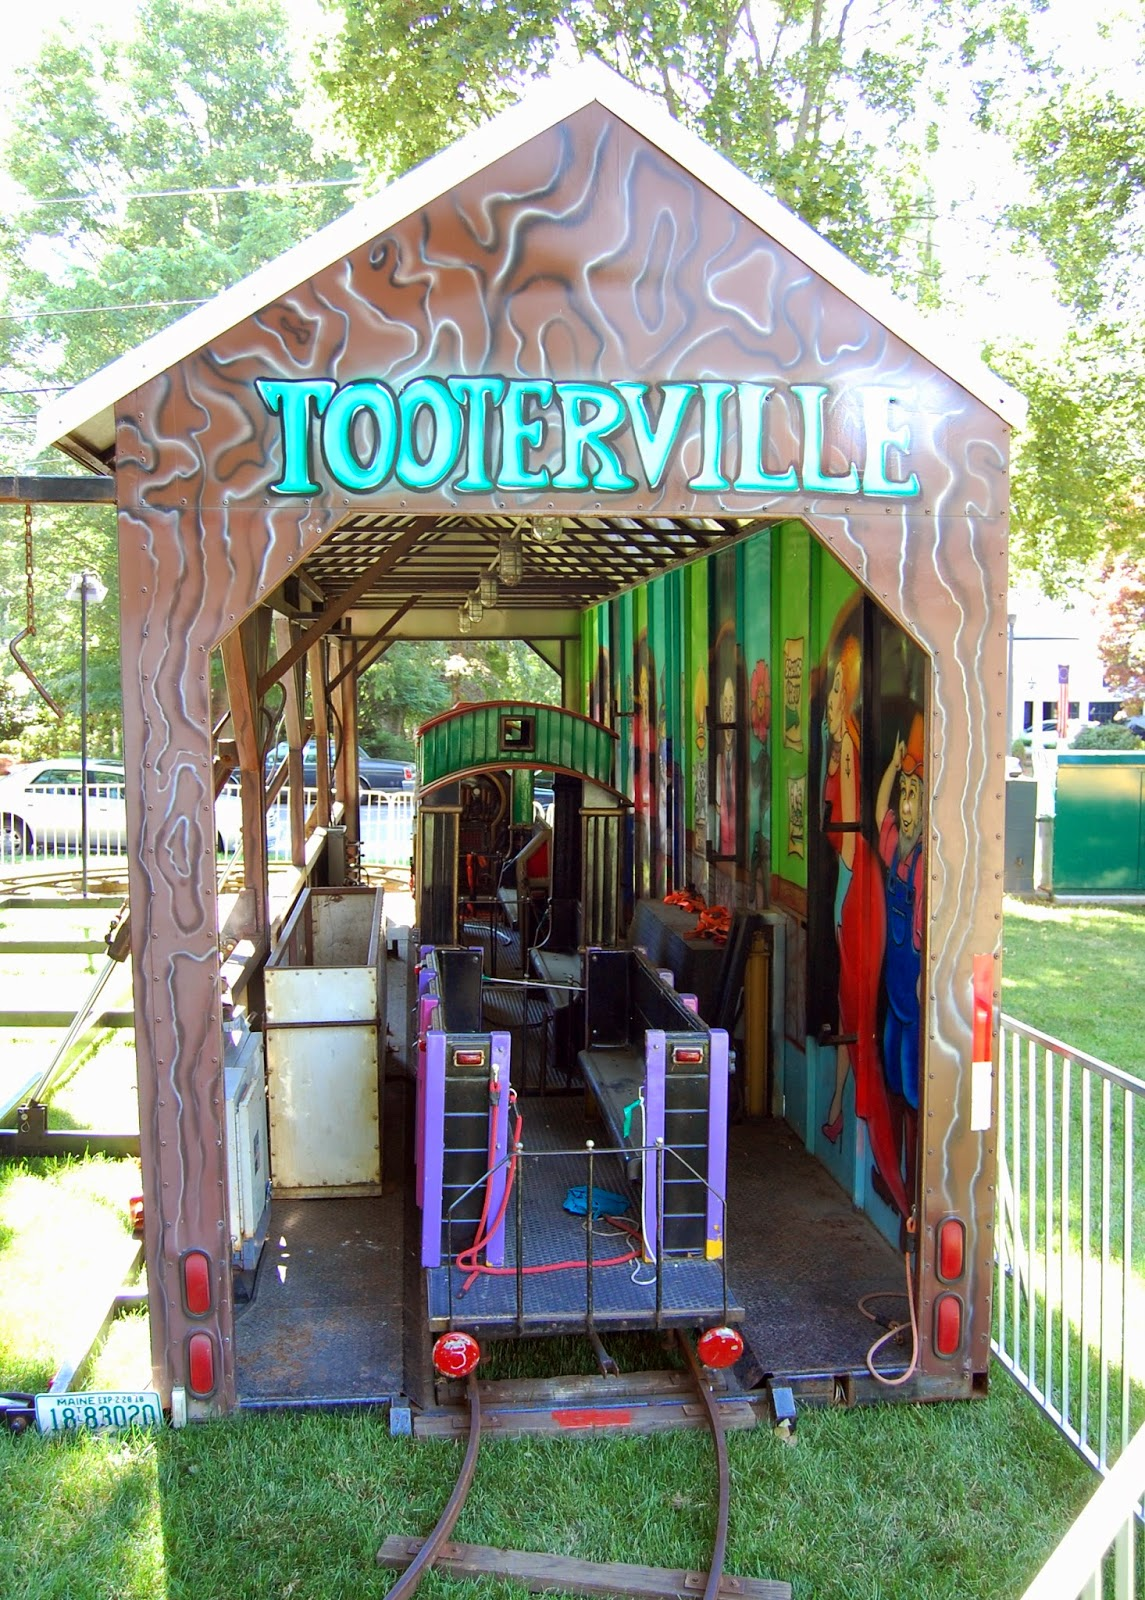 Tooterville